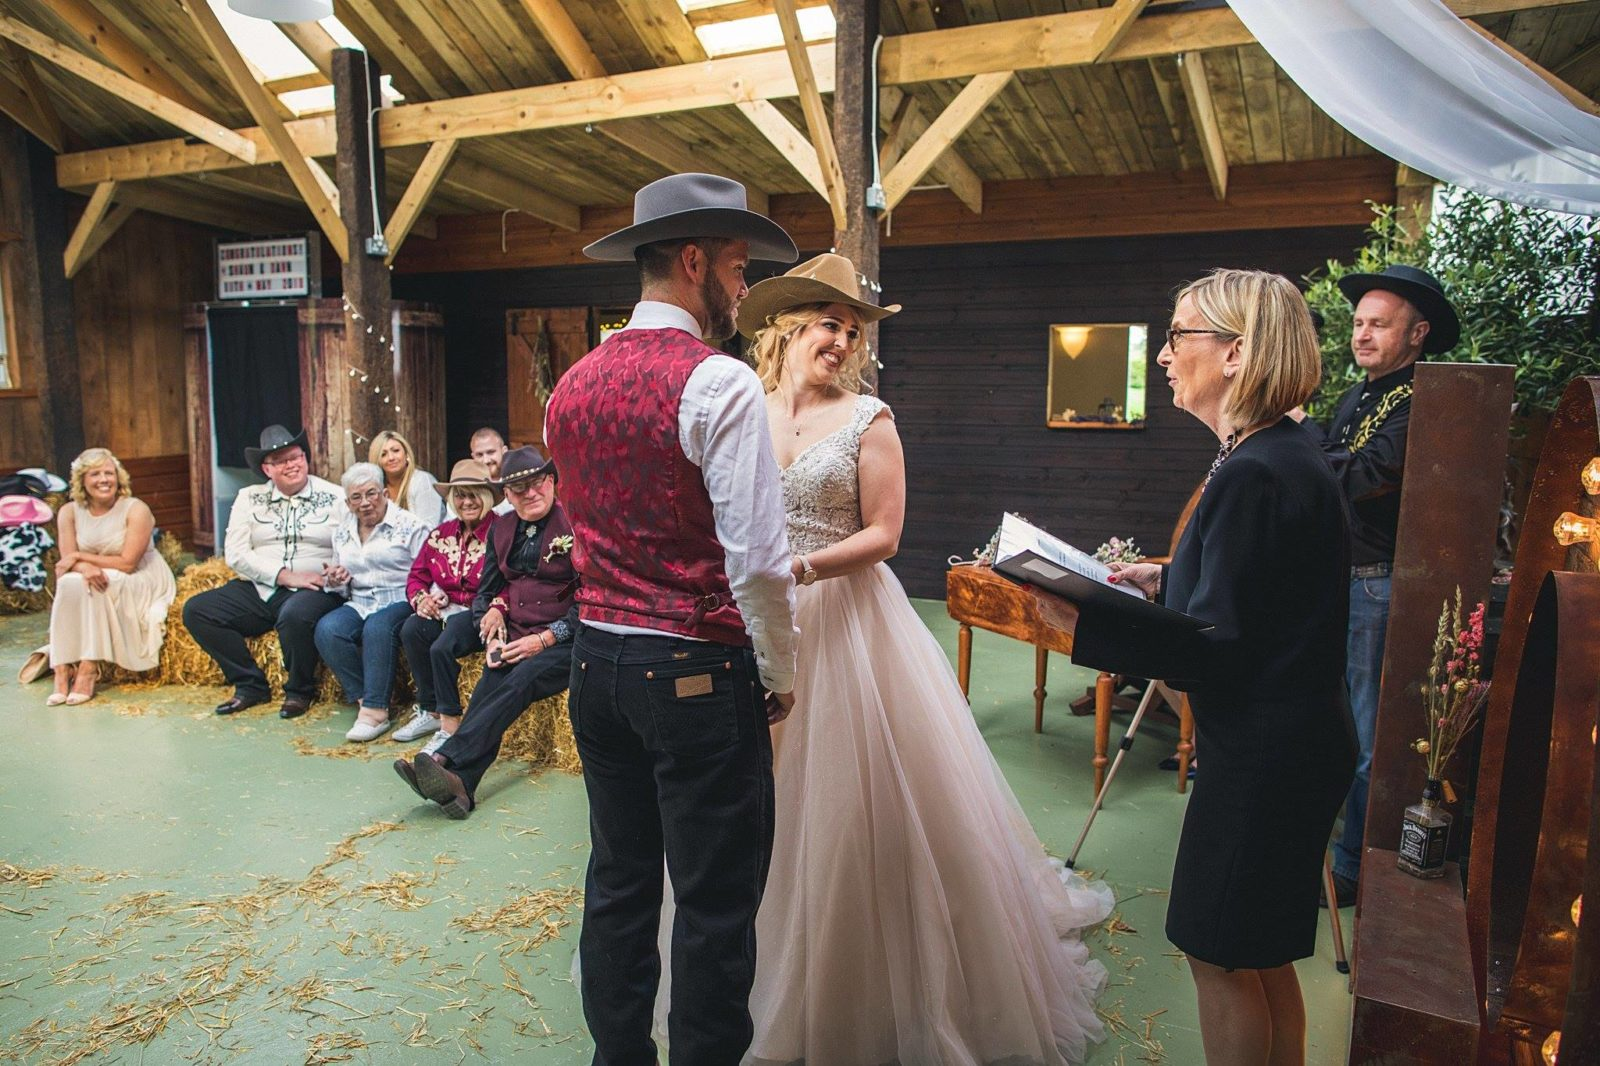 bride and groom wearing cowboy hats in barn wedding